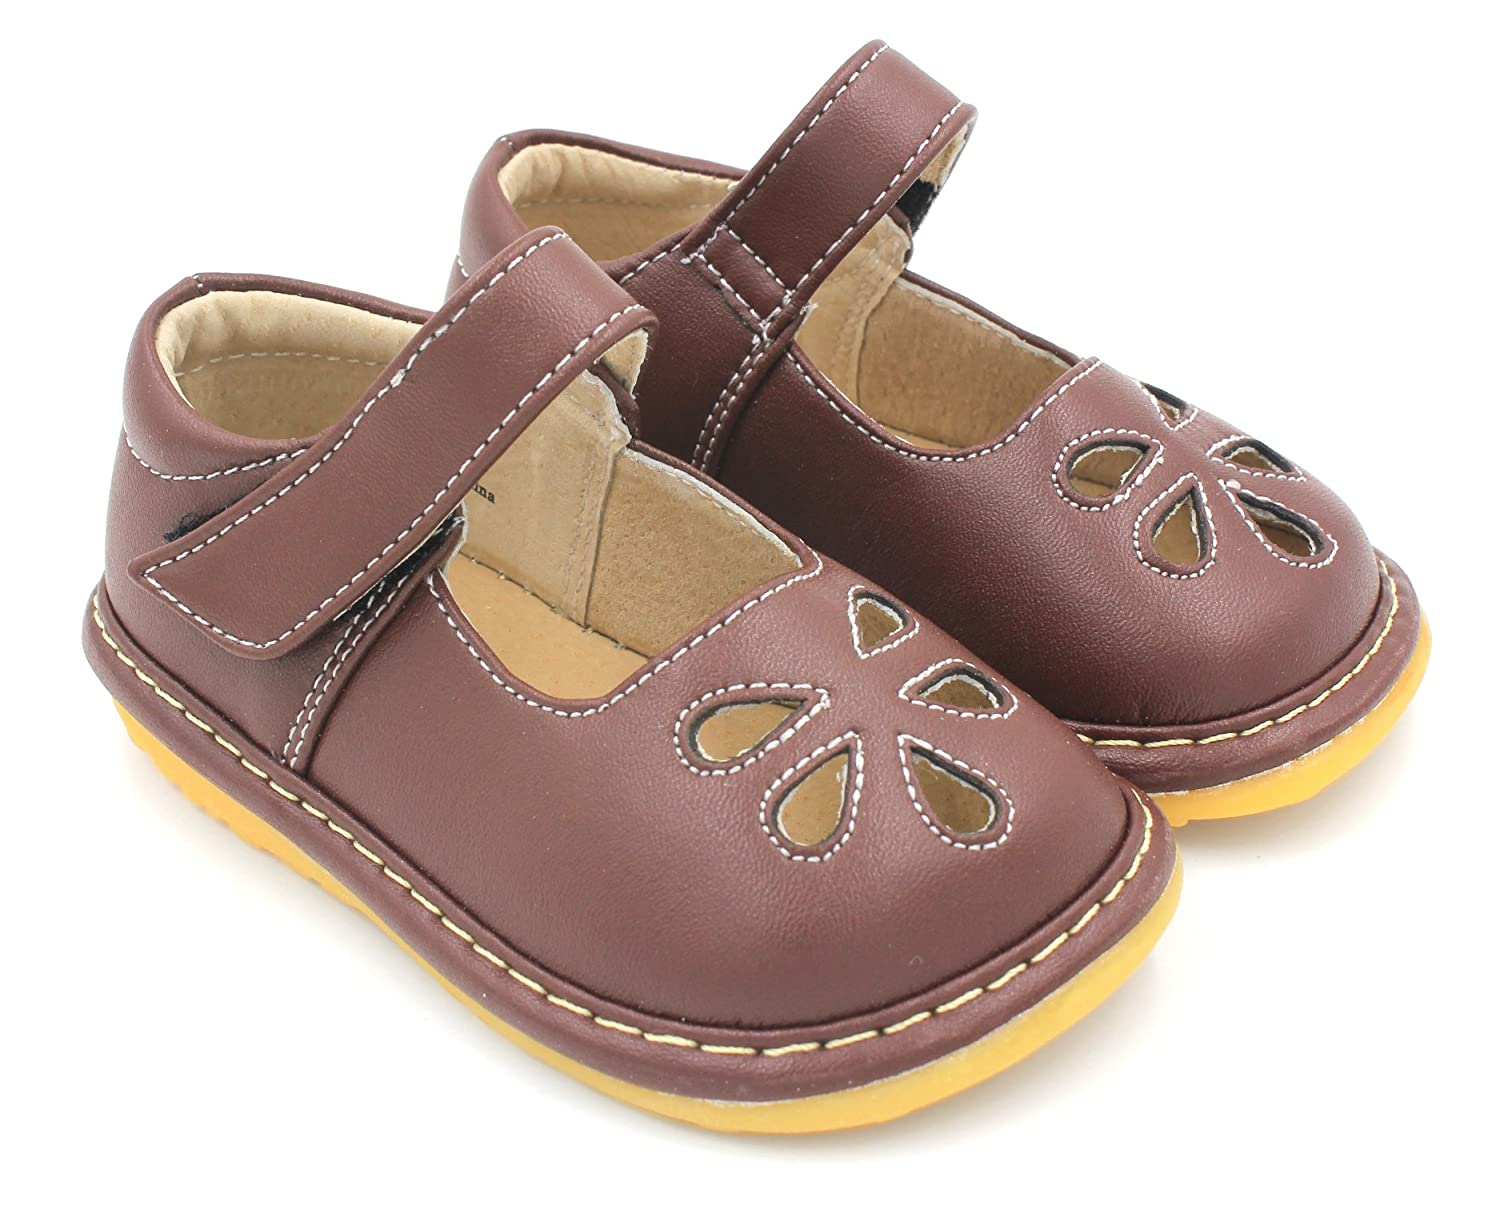 Squeaky Flower Punch Mary Jane Toddler Girl Shoes Little Maes Boutique Toddler Shoes